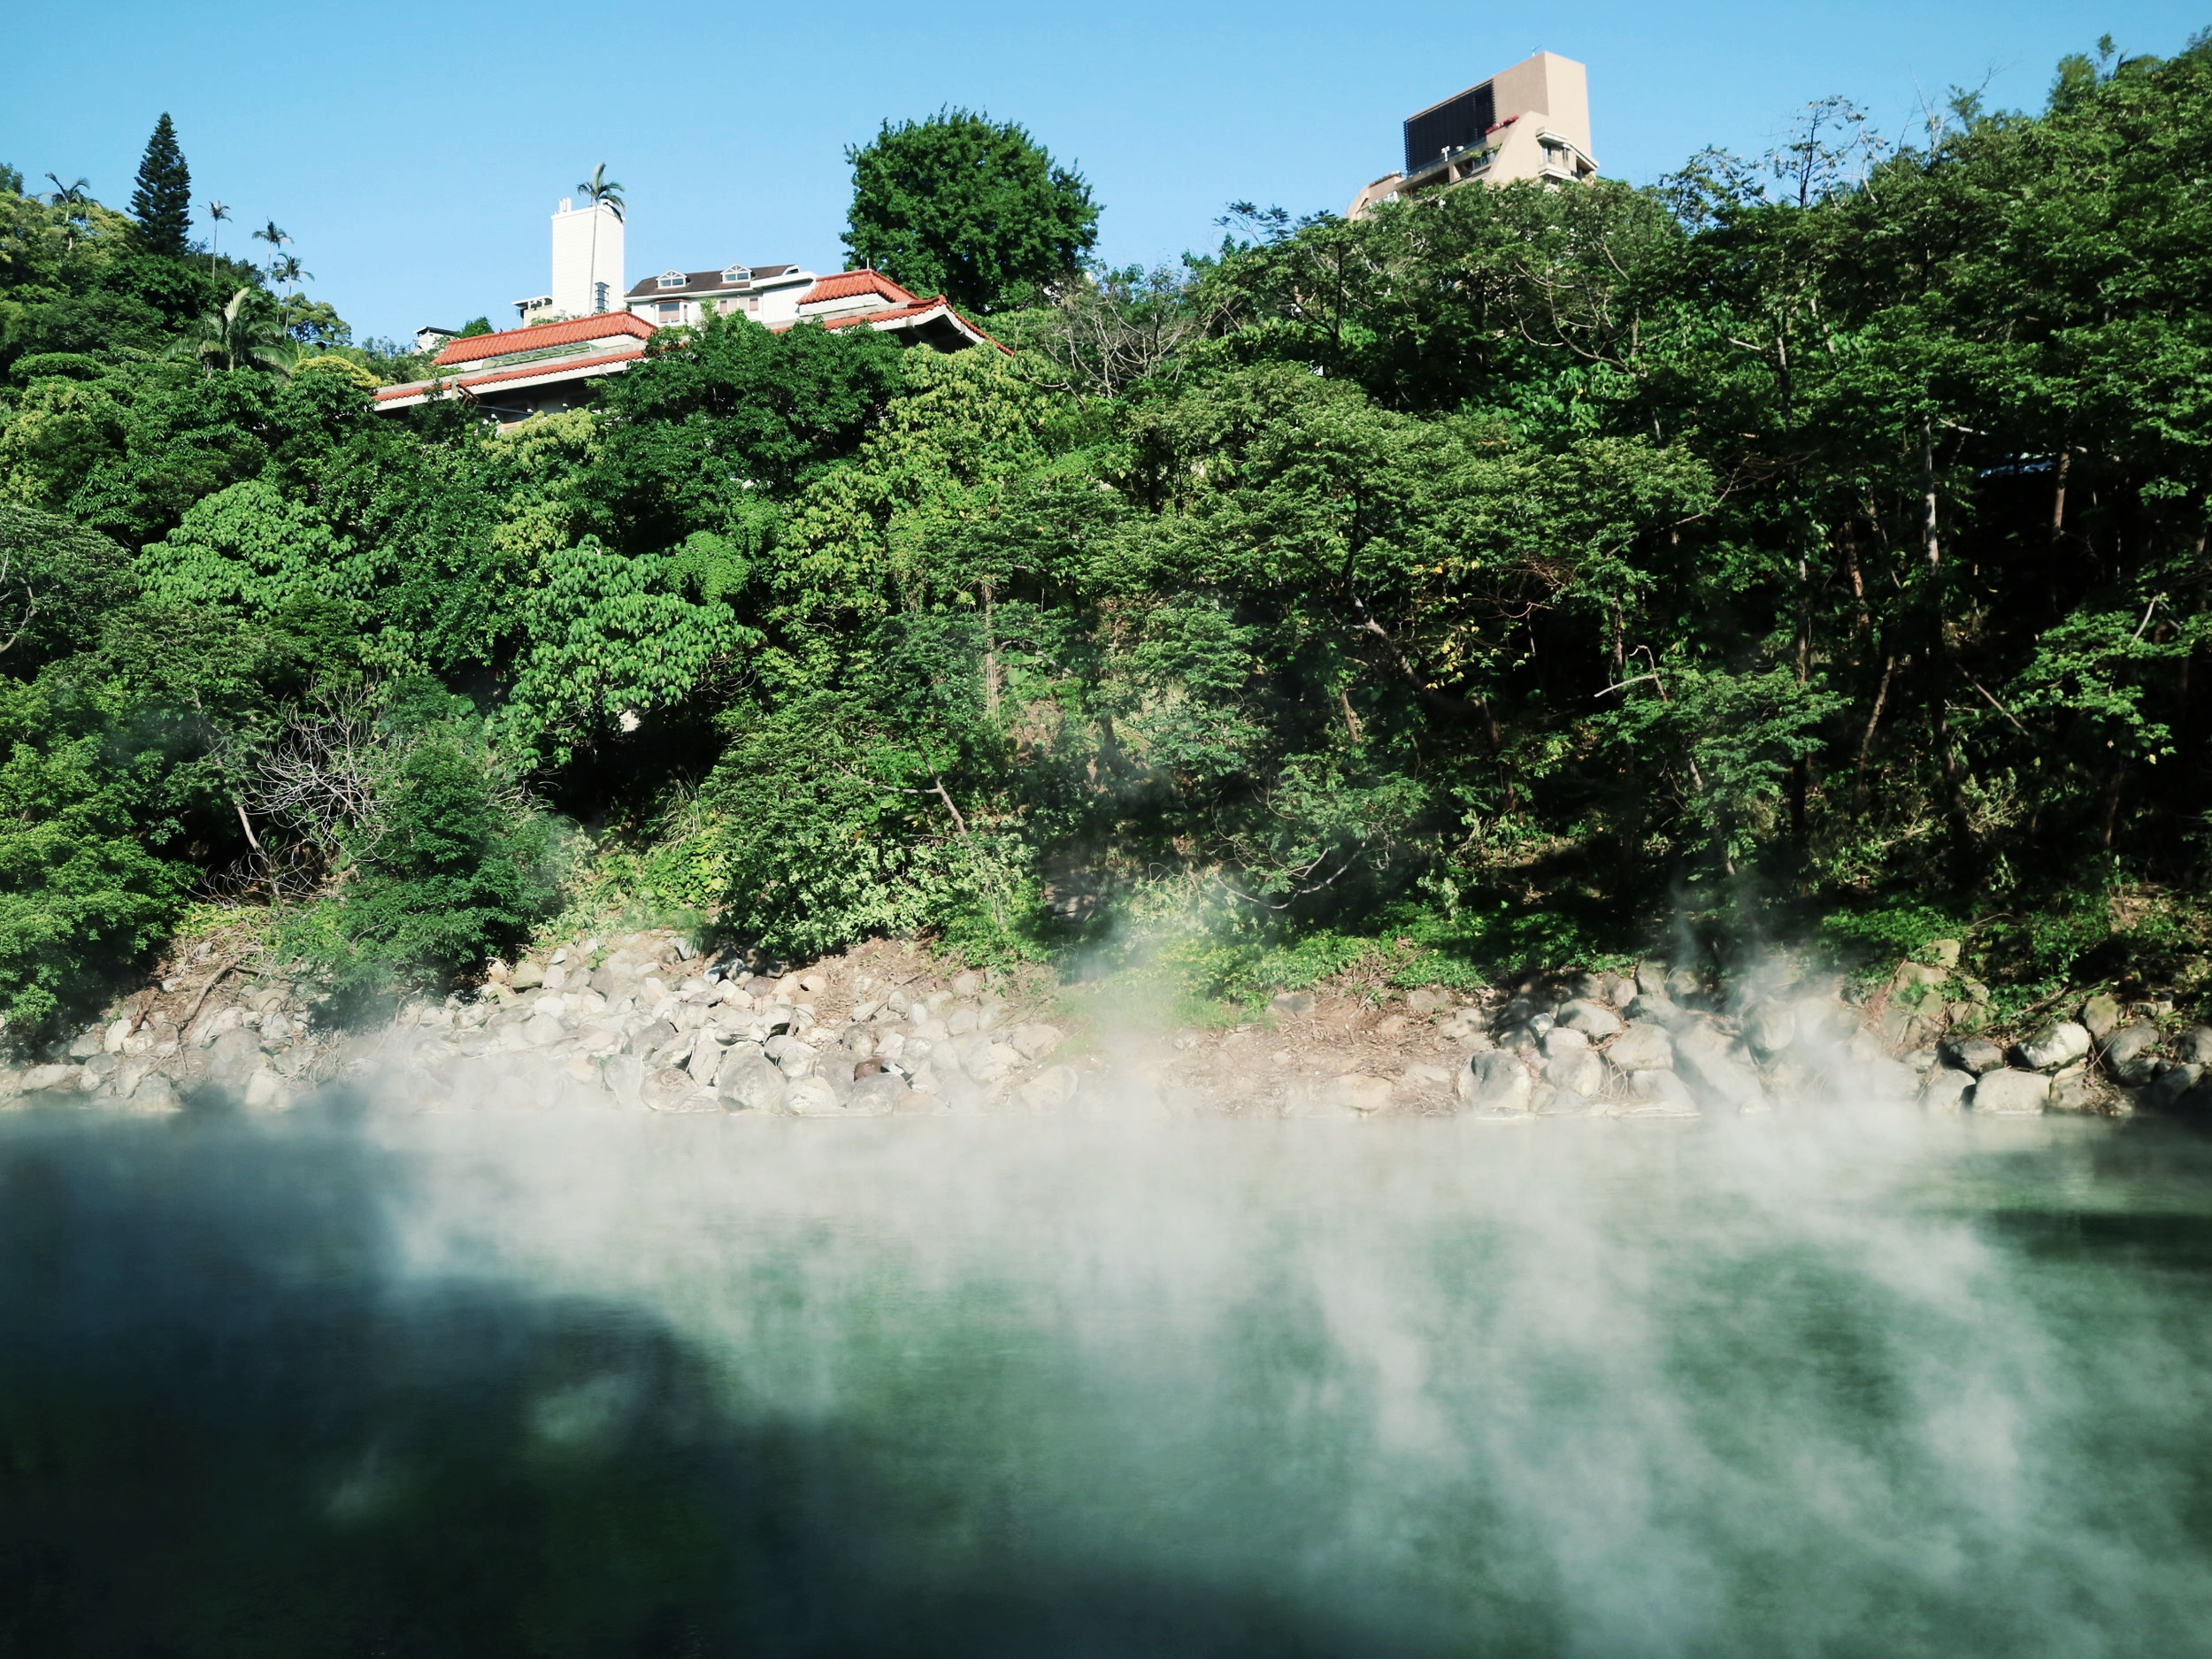 北投地熱谷 - BEITOU THERMAL VALLEY